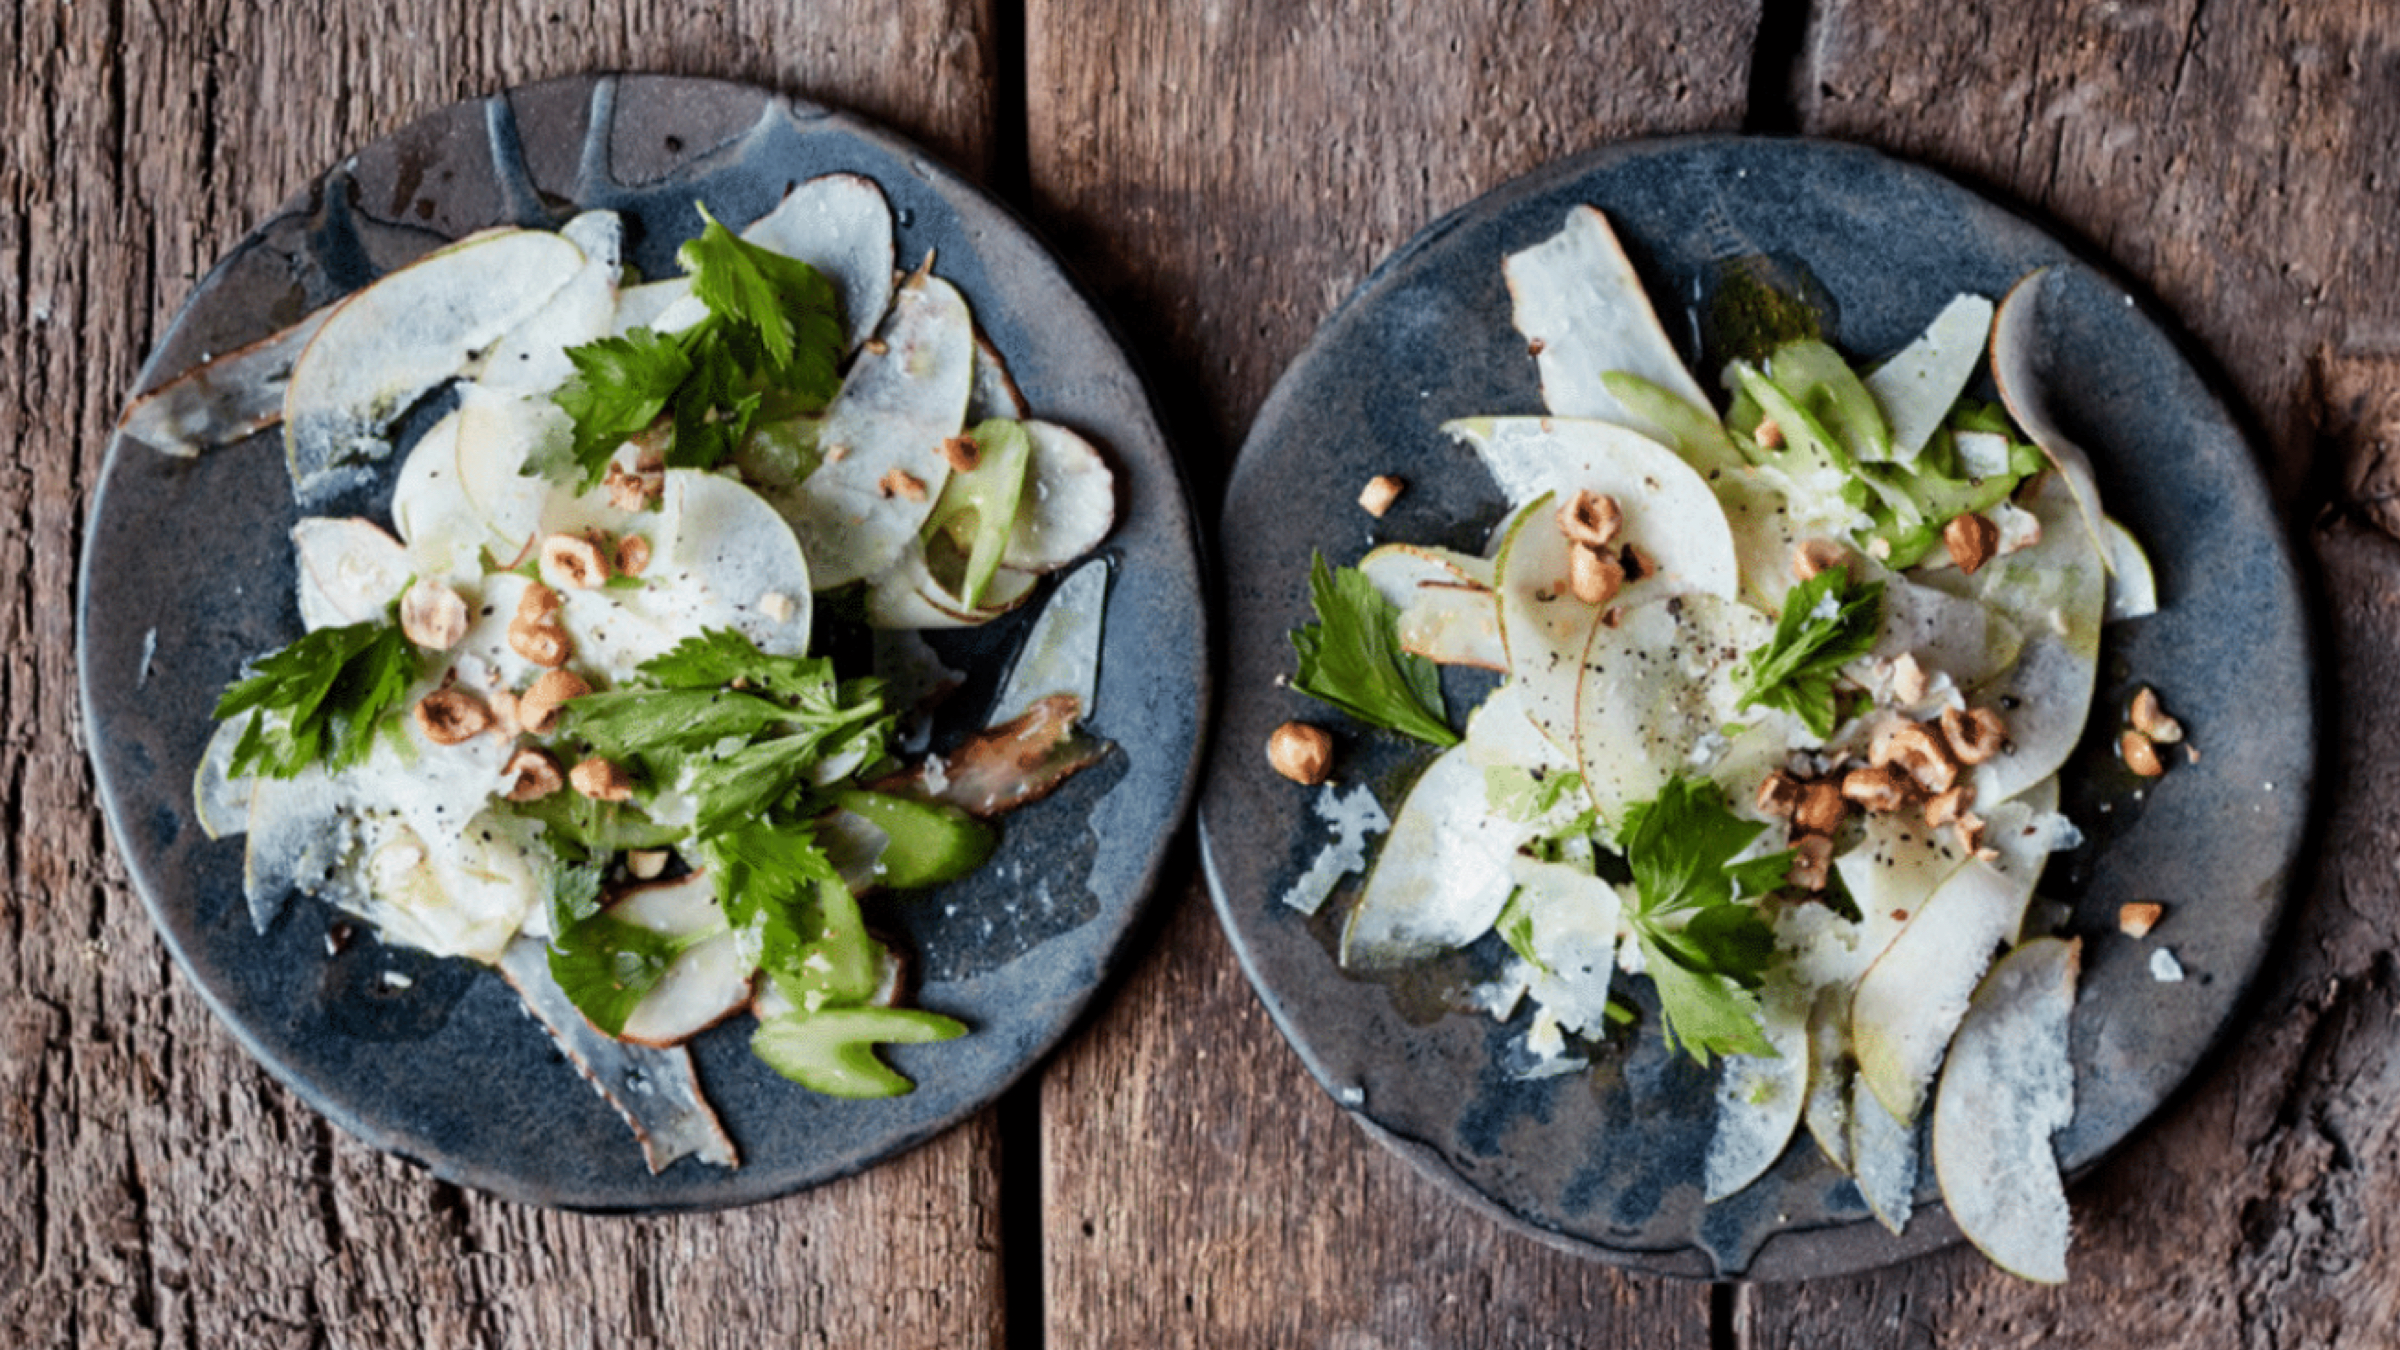 Weekly Swoon: Serving Up Your Next Side Dish